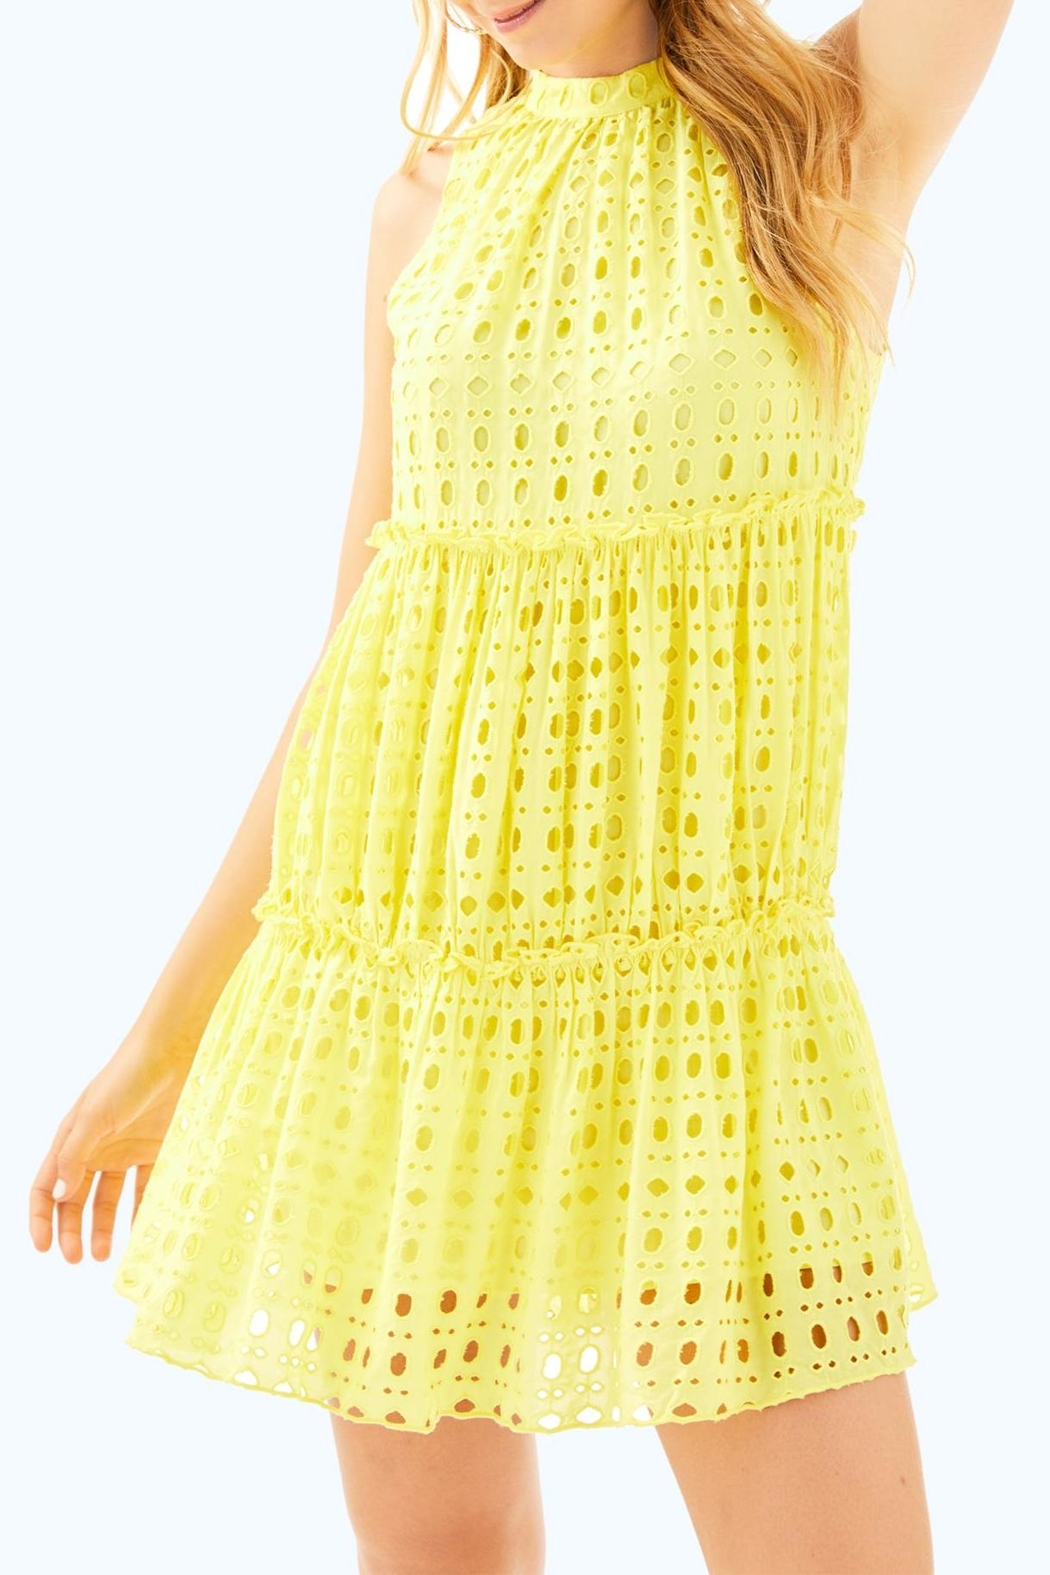 a31216aba3 Lilly Pulitzer Indira Dress from Sandestin Golf and Beach Resort by ...